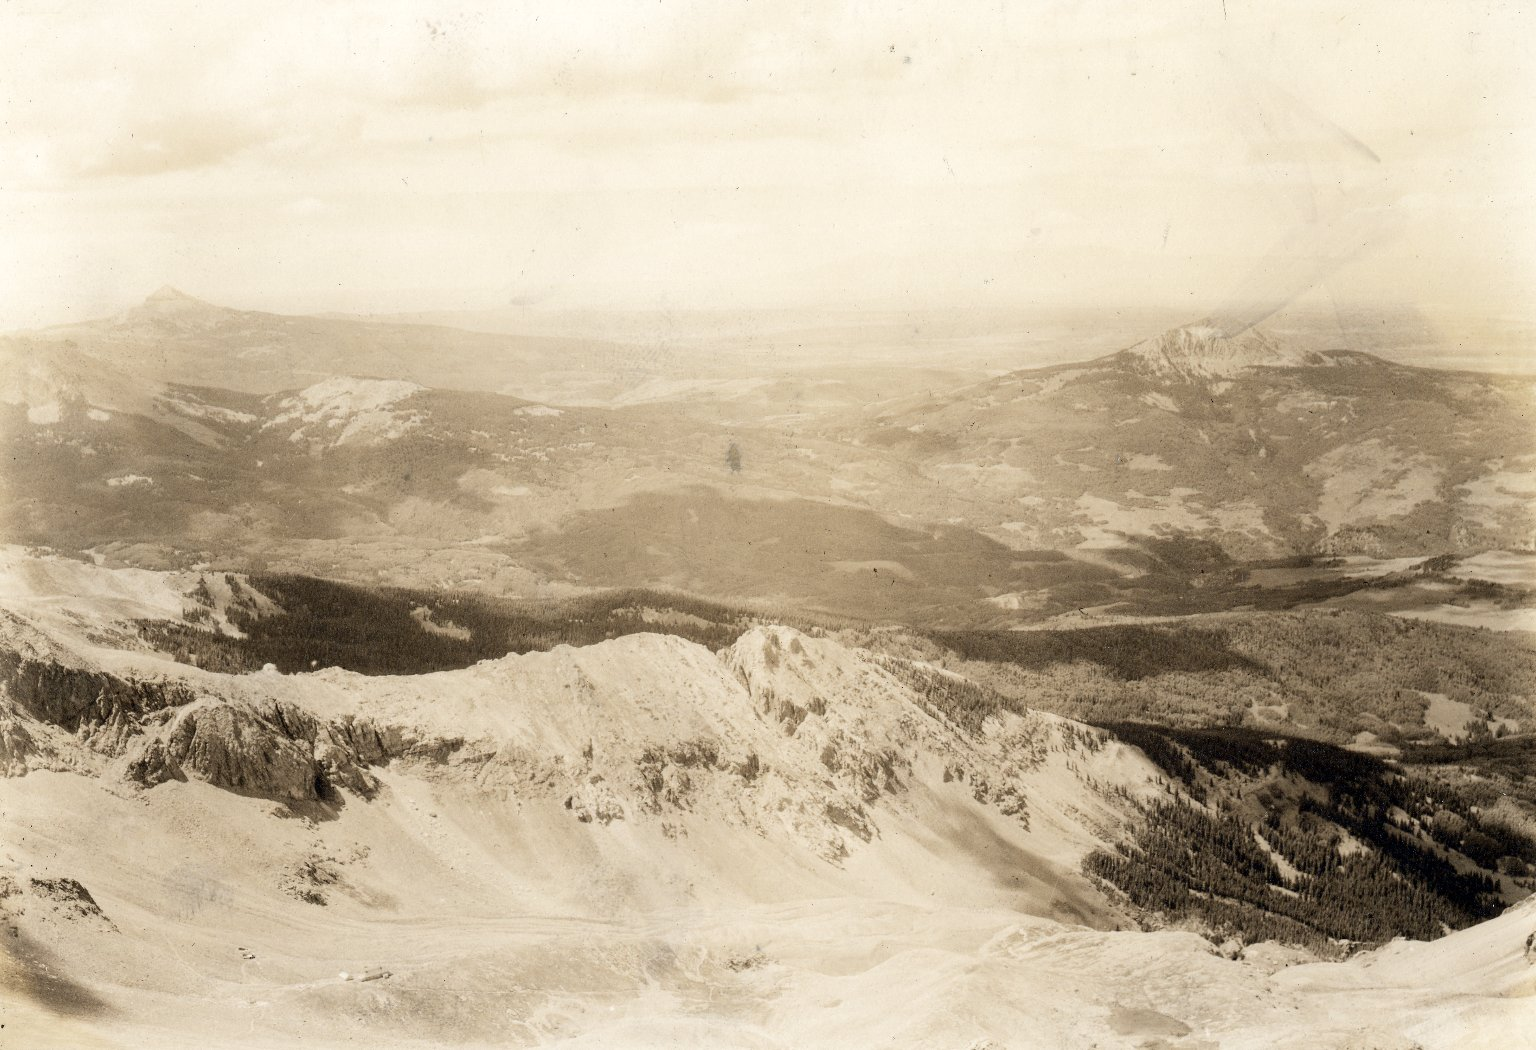 View of lower peaks from high, icy vantage point